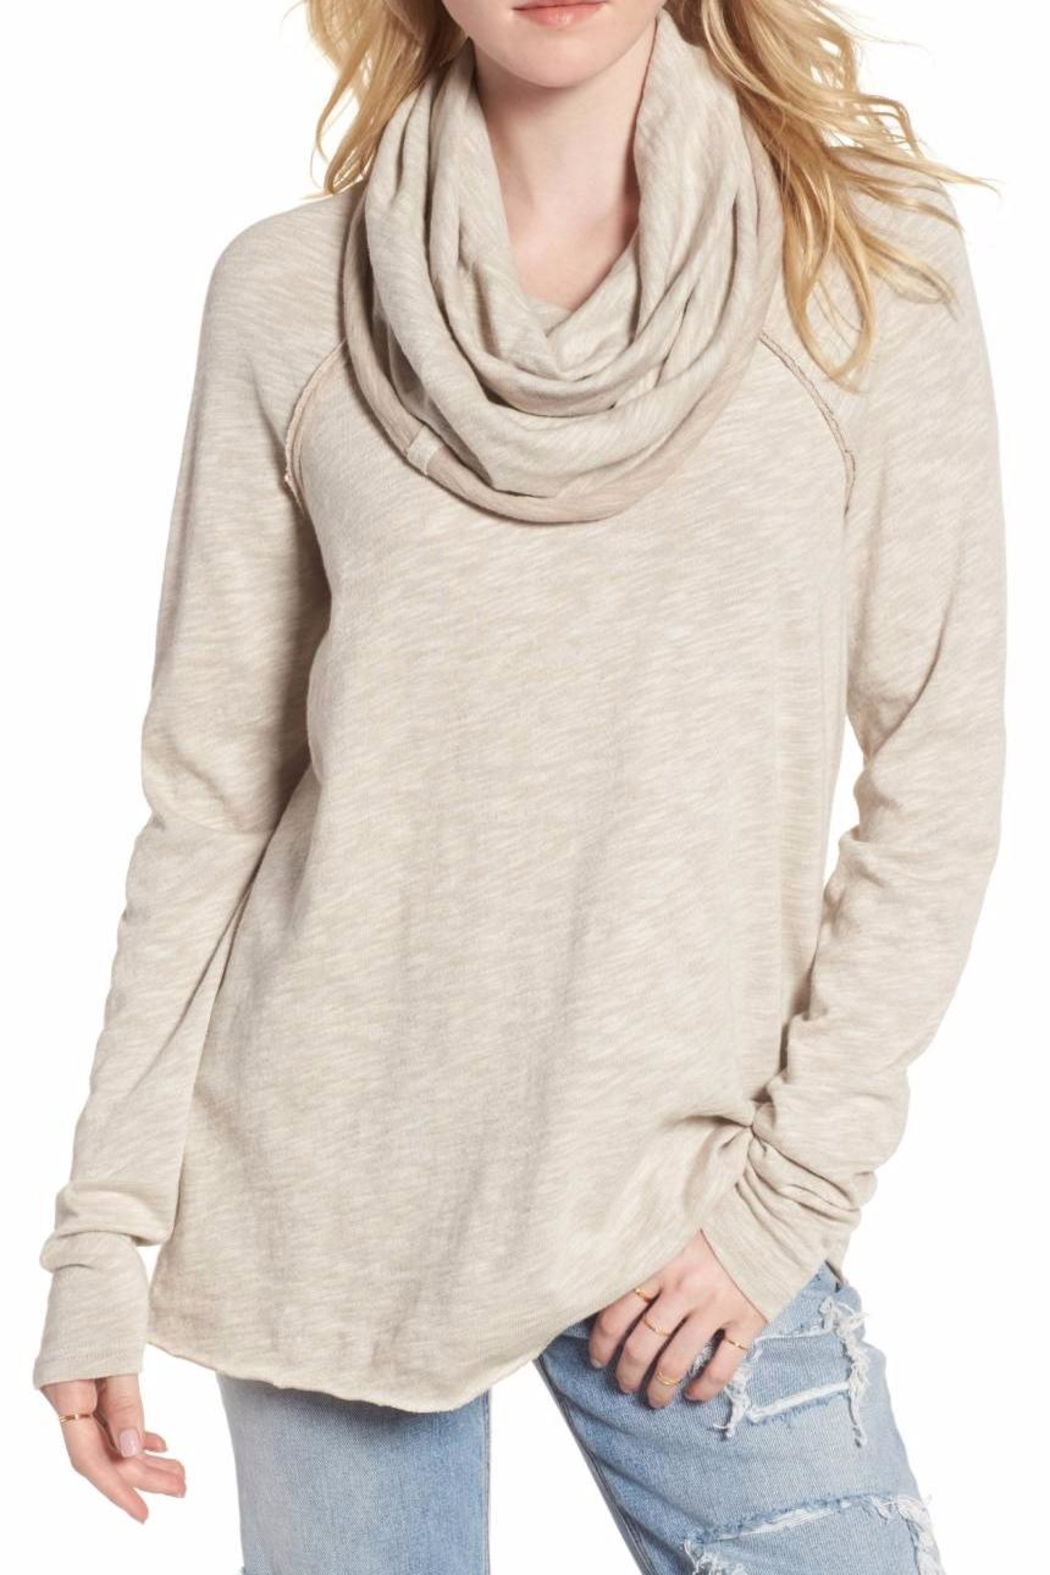 c7ee13cbf0 Free People Cocoon Cowl Neck Pullover from Georgia by Mimi's, The ...